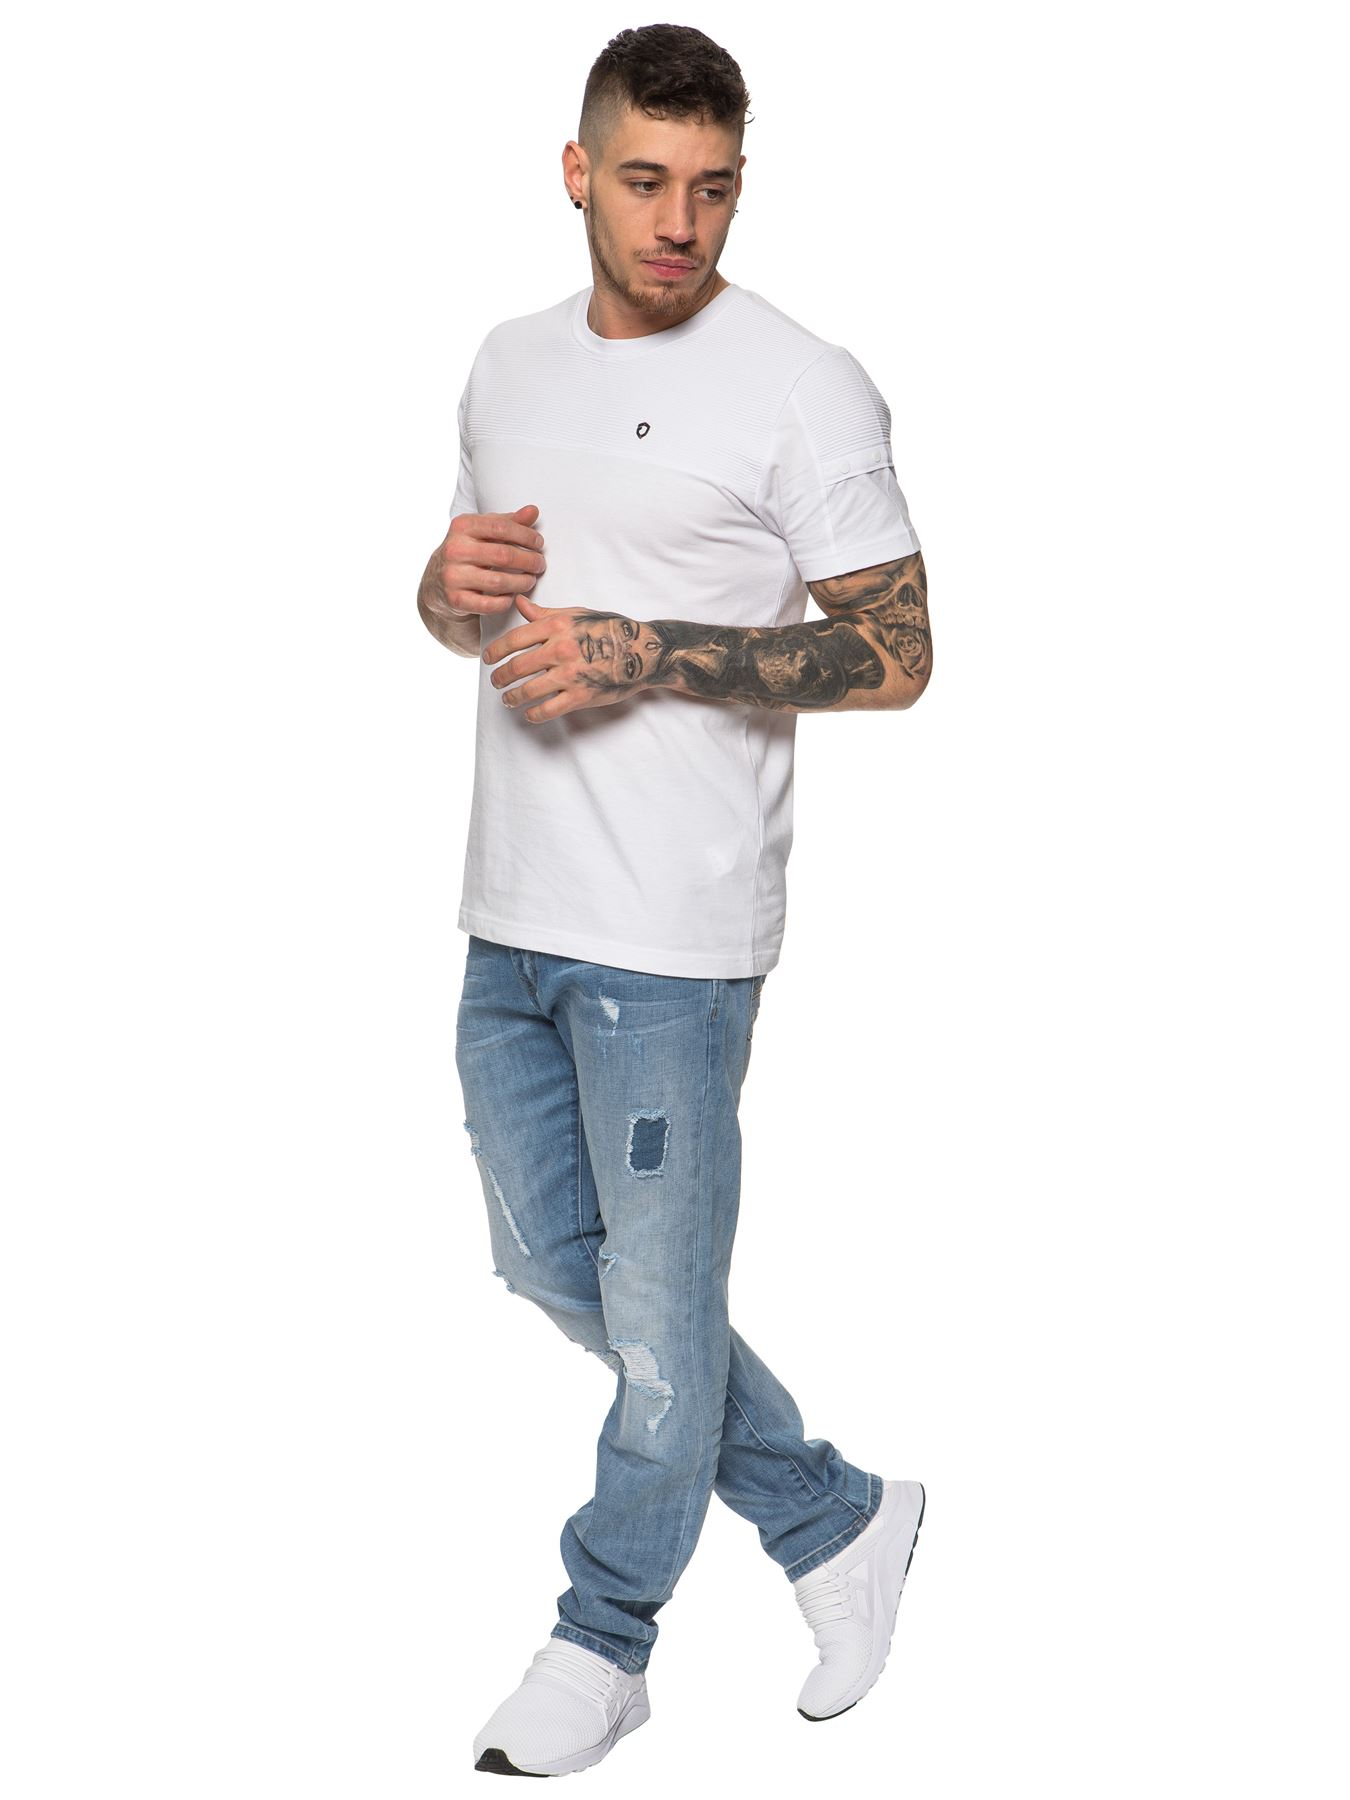 ETO-Designer-Mens-Ripped-Blue-Jeans-Distressed-Denim-Tapered-Fit-Trousers-Pants thumbnail 10